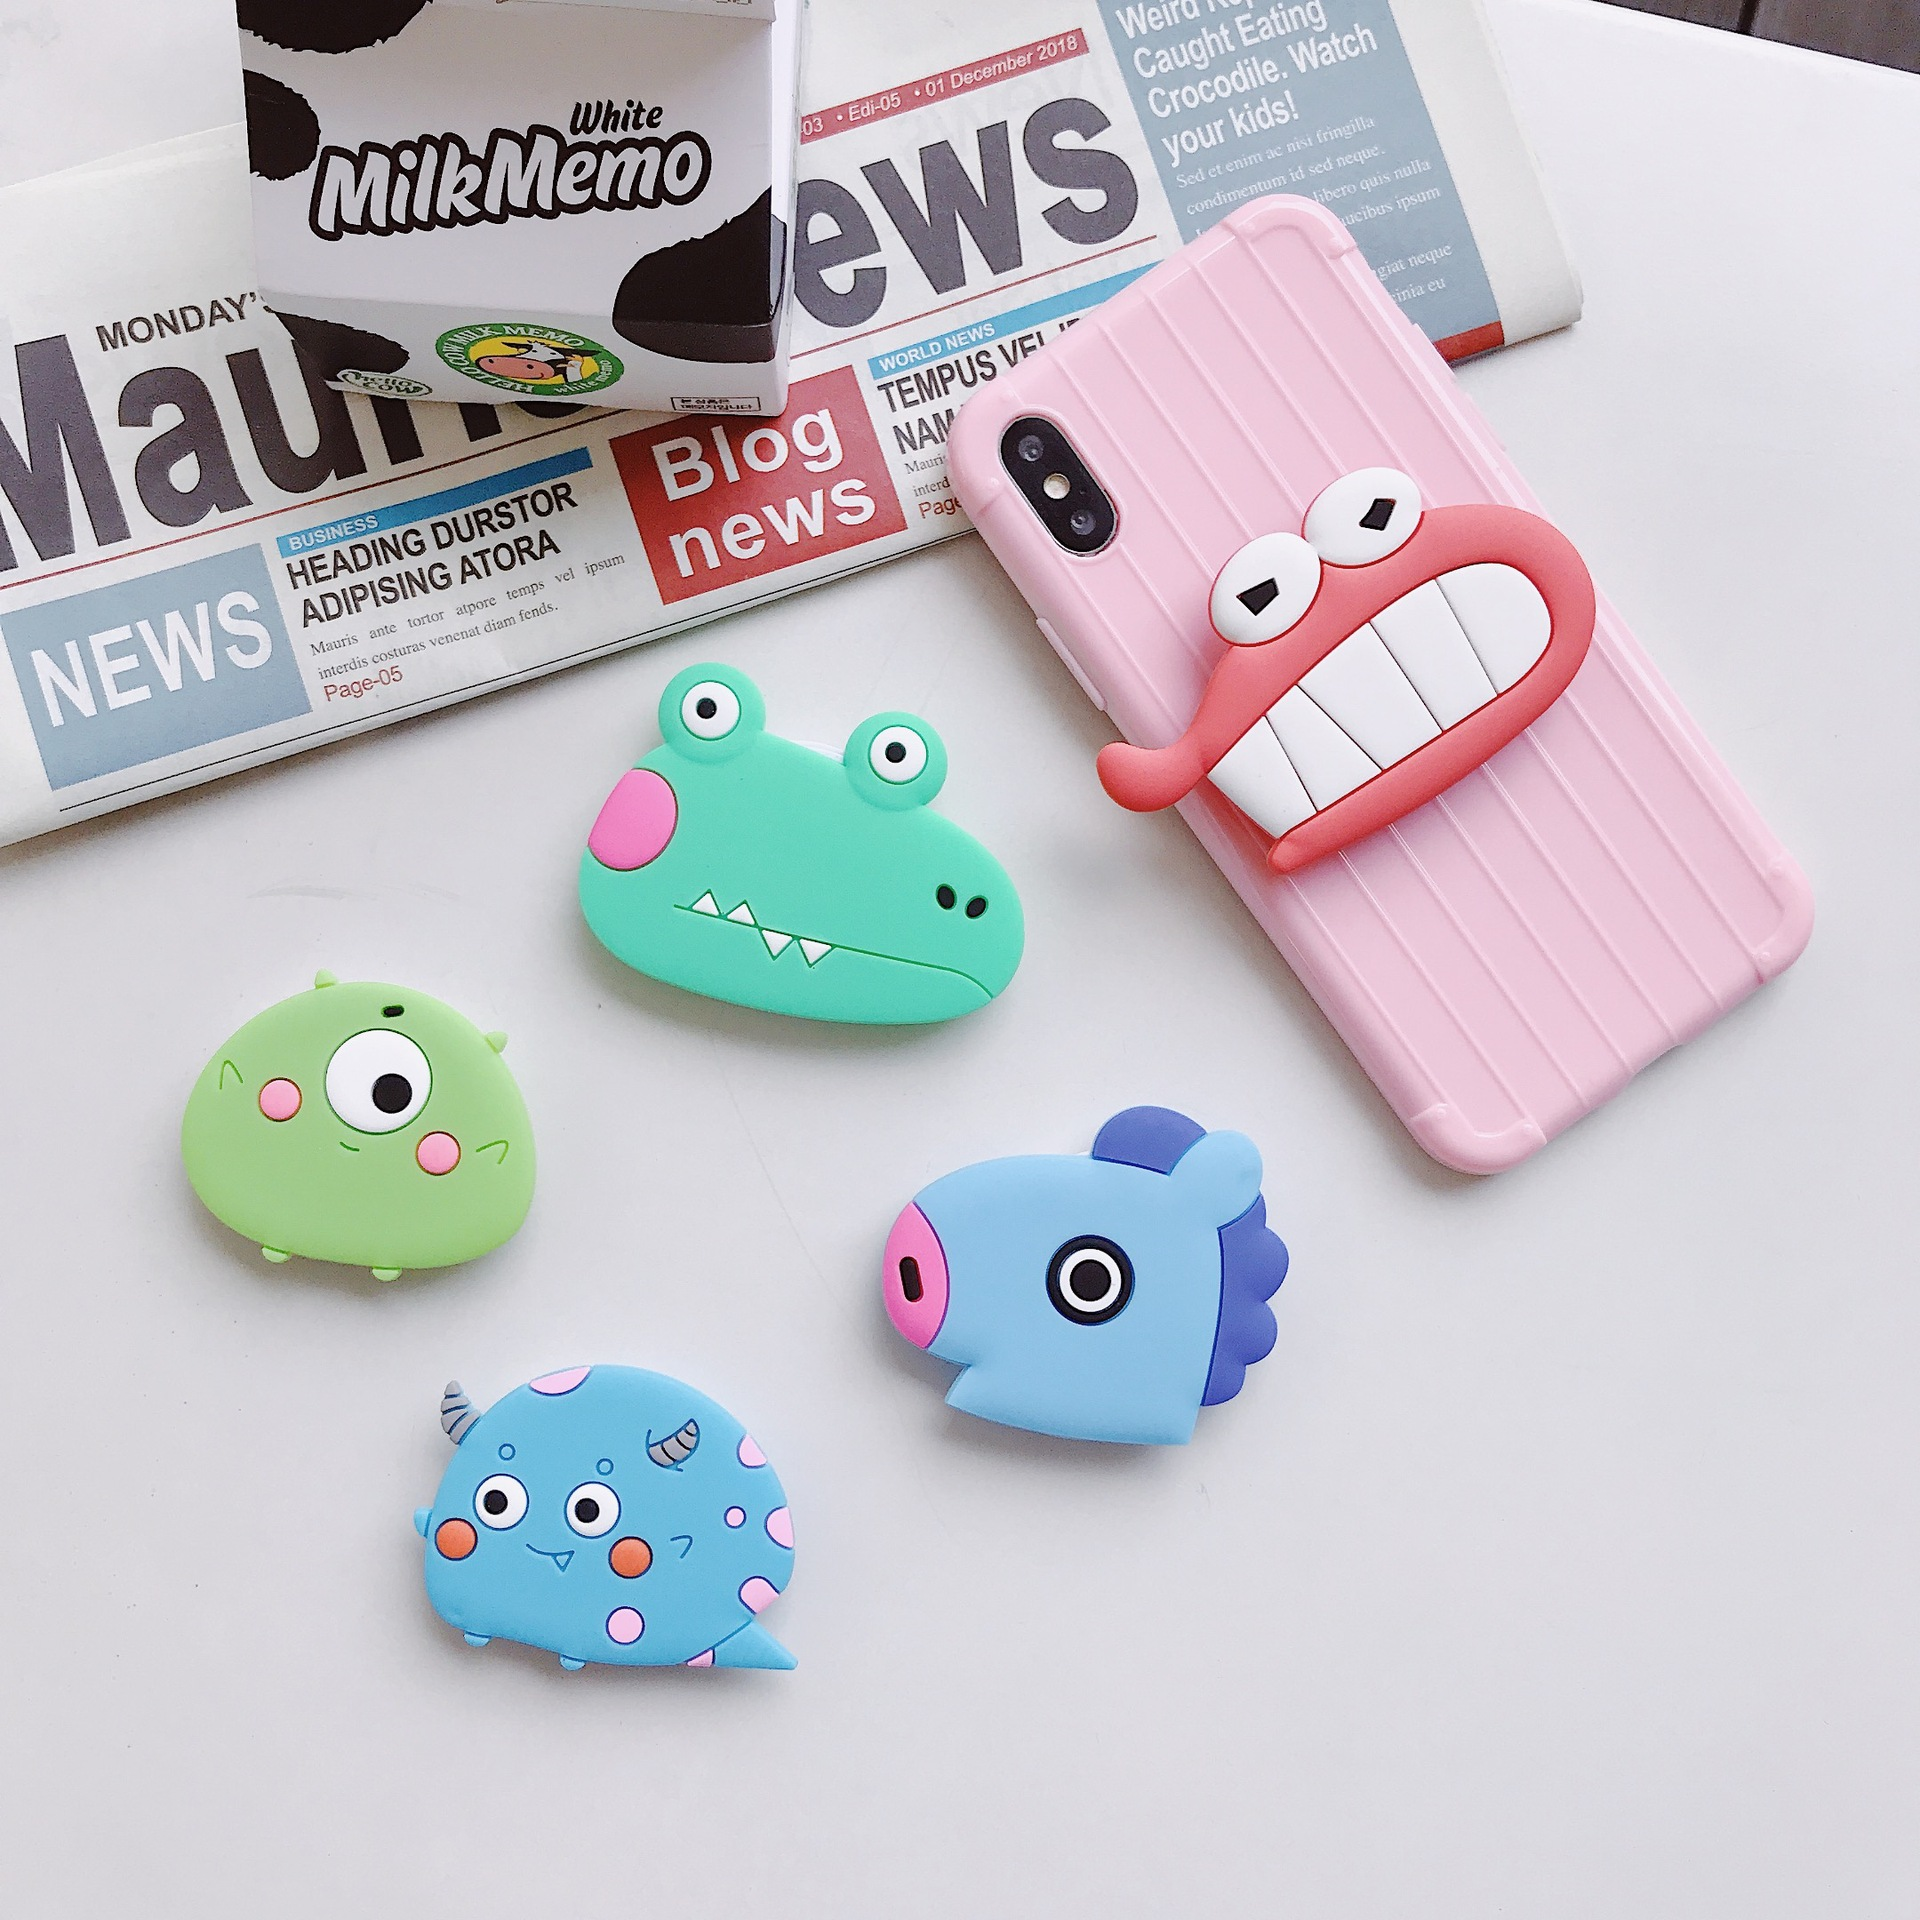 WholesaPPSocket Mobile Phone Soket Stretch Bracket Cartoon Airbag Phone Expanding Phone Stand Finger Car Phone Holder Pipsocket